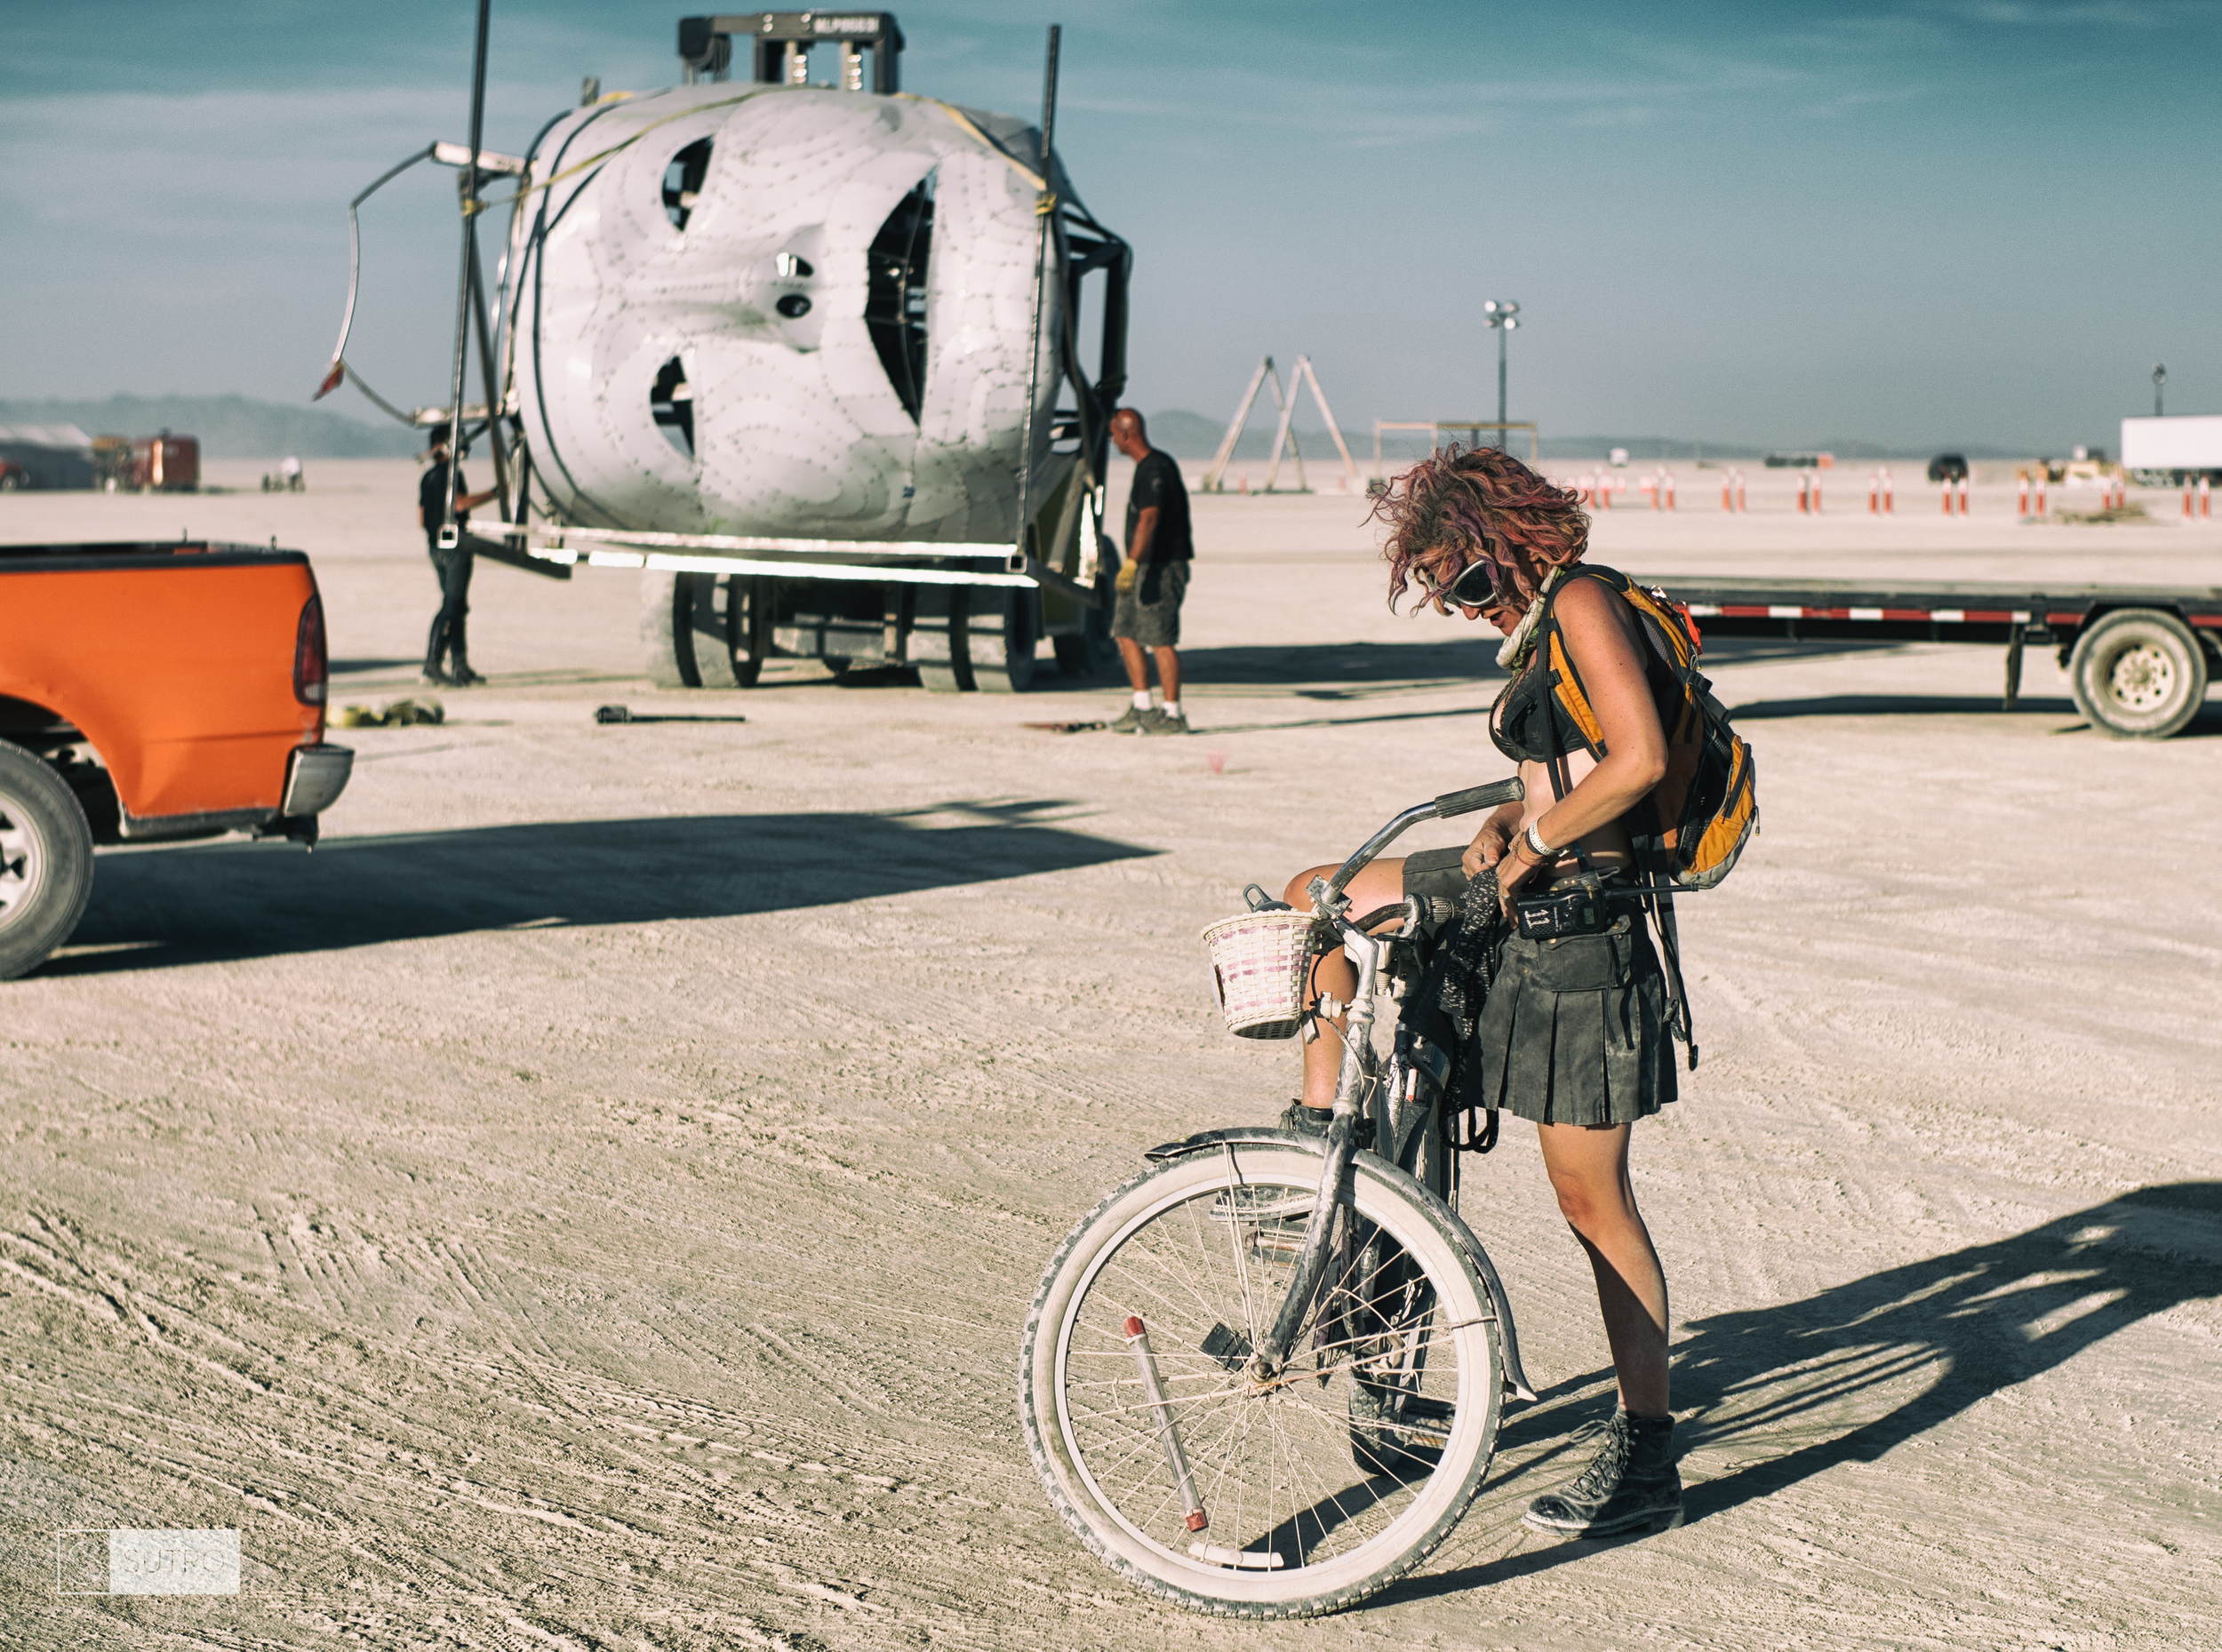 Mango, on her bike, while crew members from the Medusa art piece transport the head.